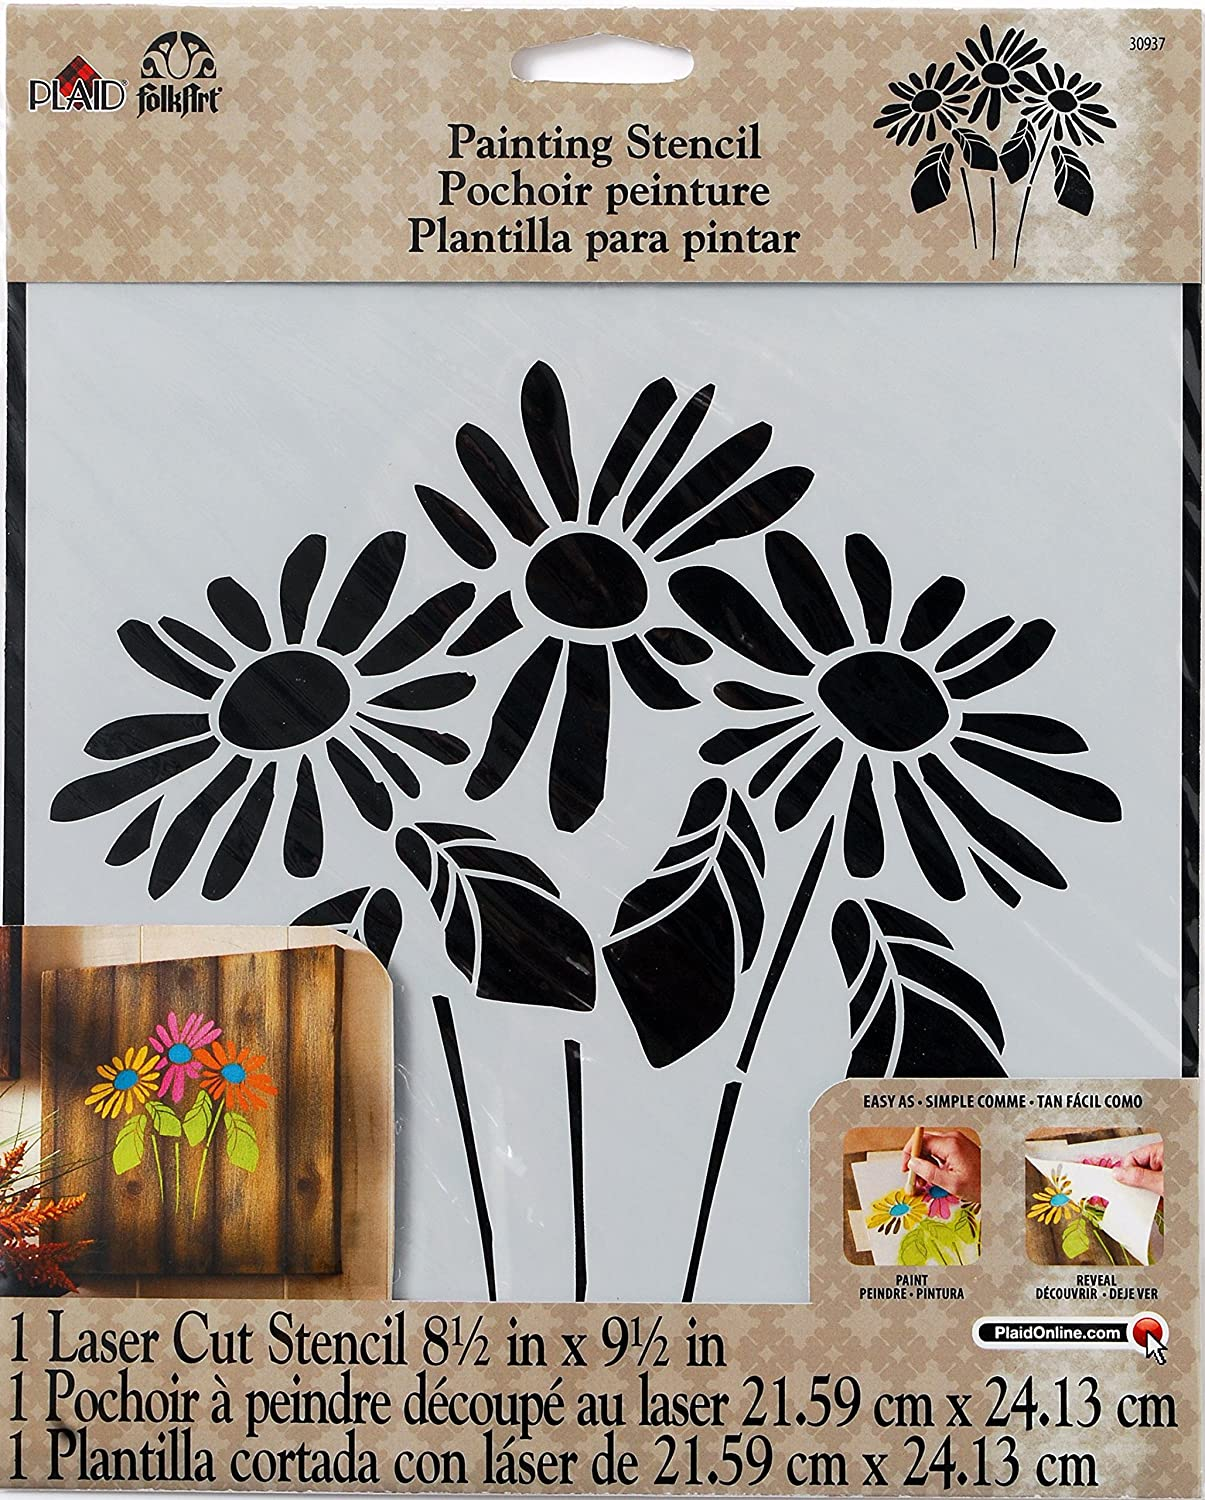 Amazon.com: FolkArt Large Painting Stencil, 30593 Fleur Motif: Arts, Crafts & Sewing